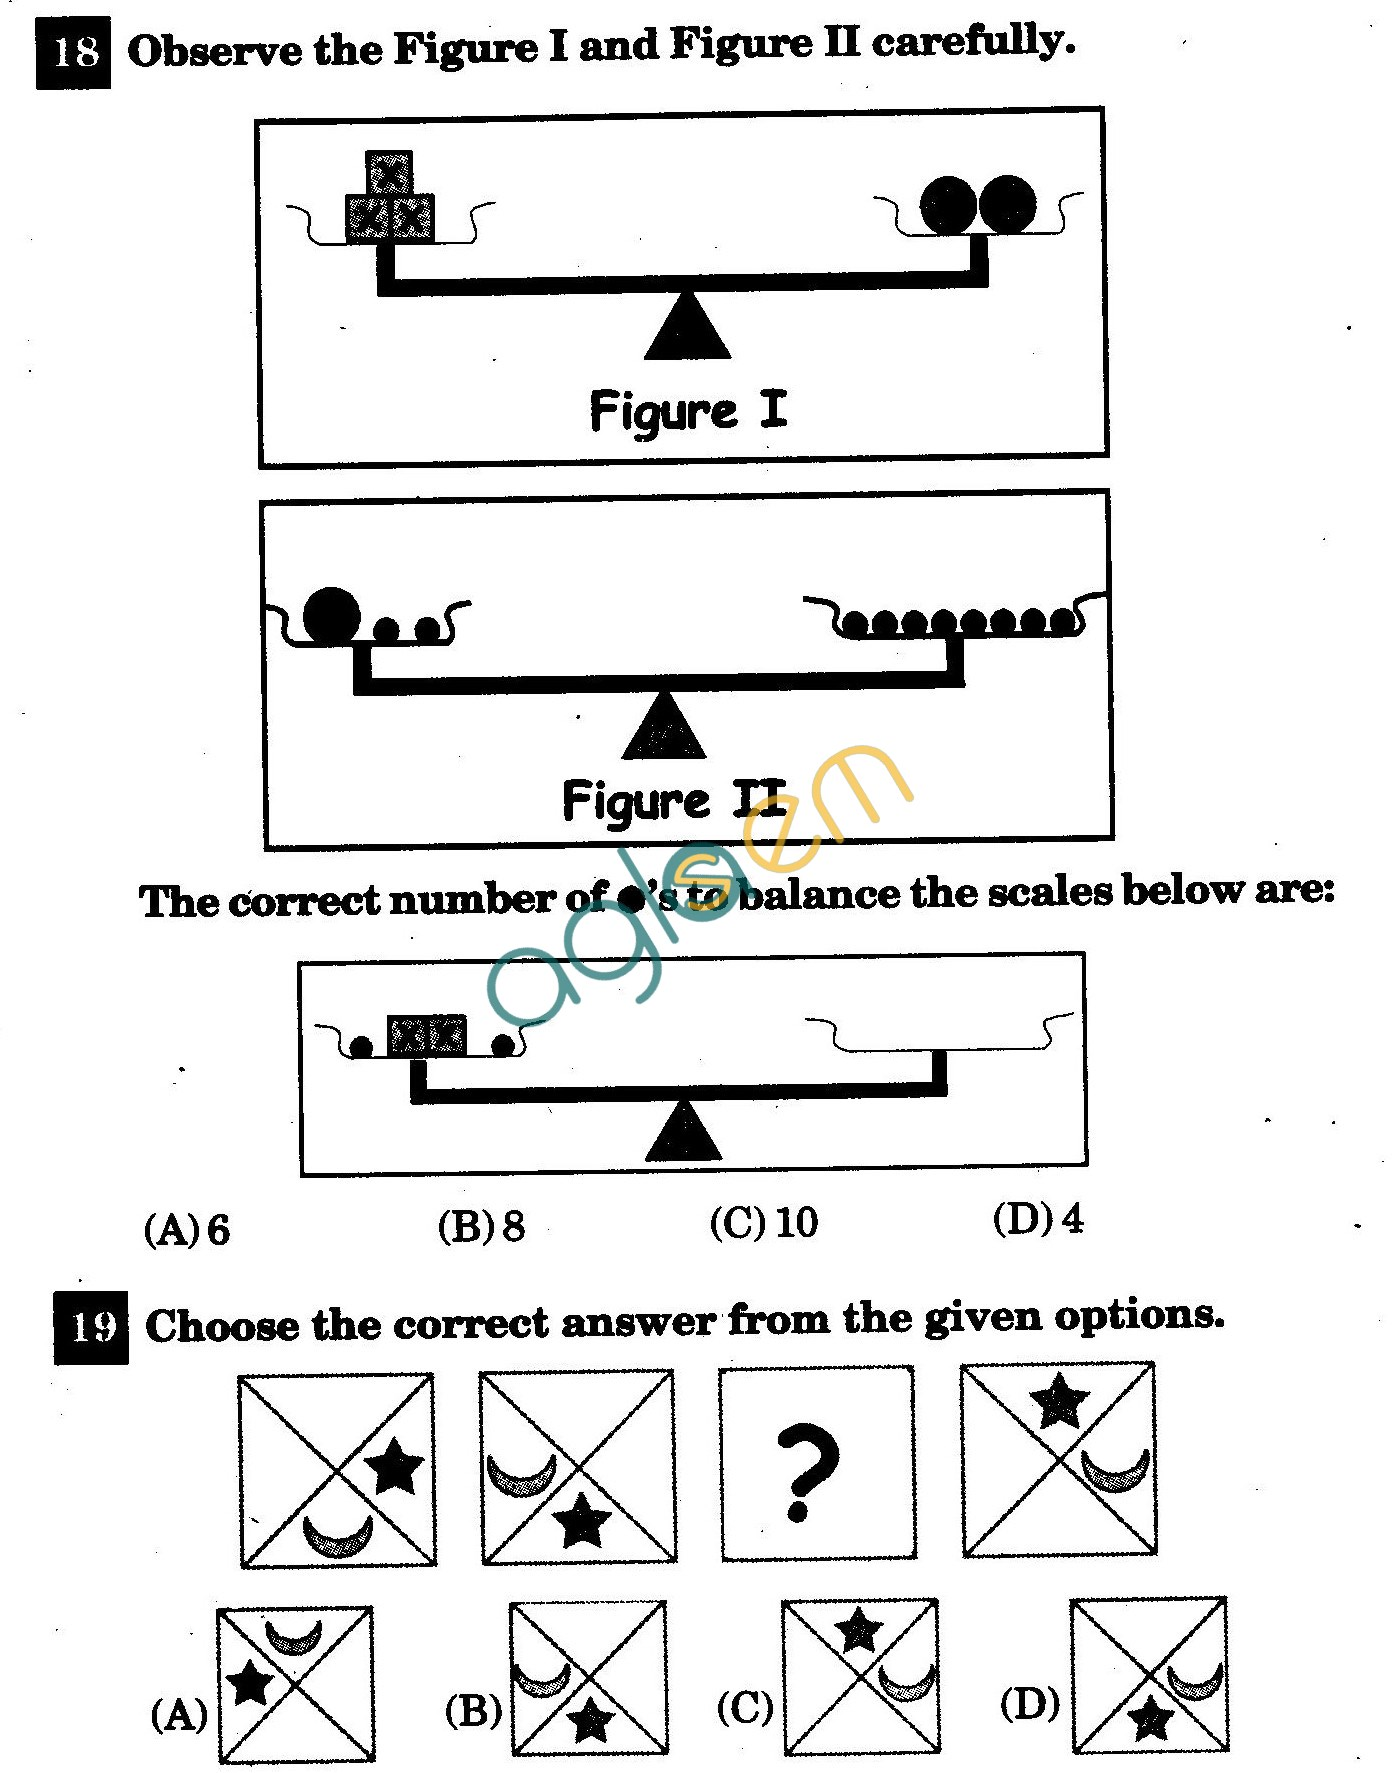 NSTSE 2011 Class III Question Paper with Answers - Mathematics